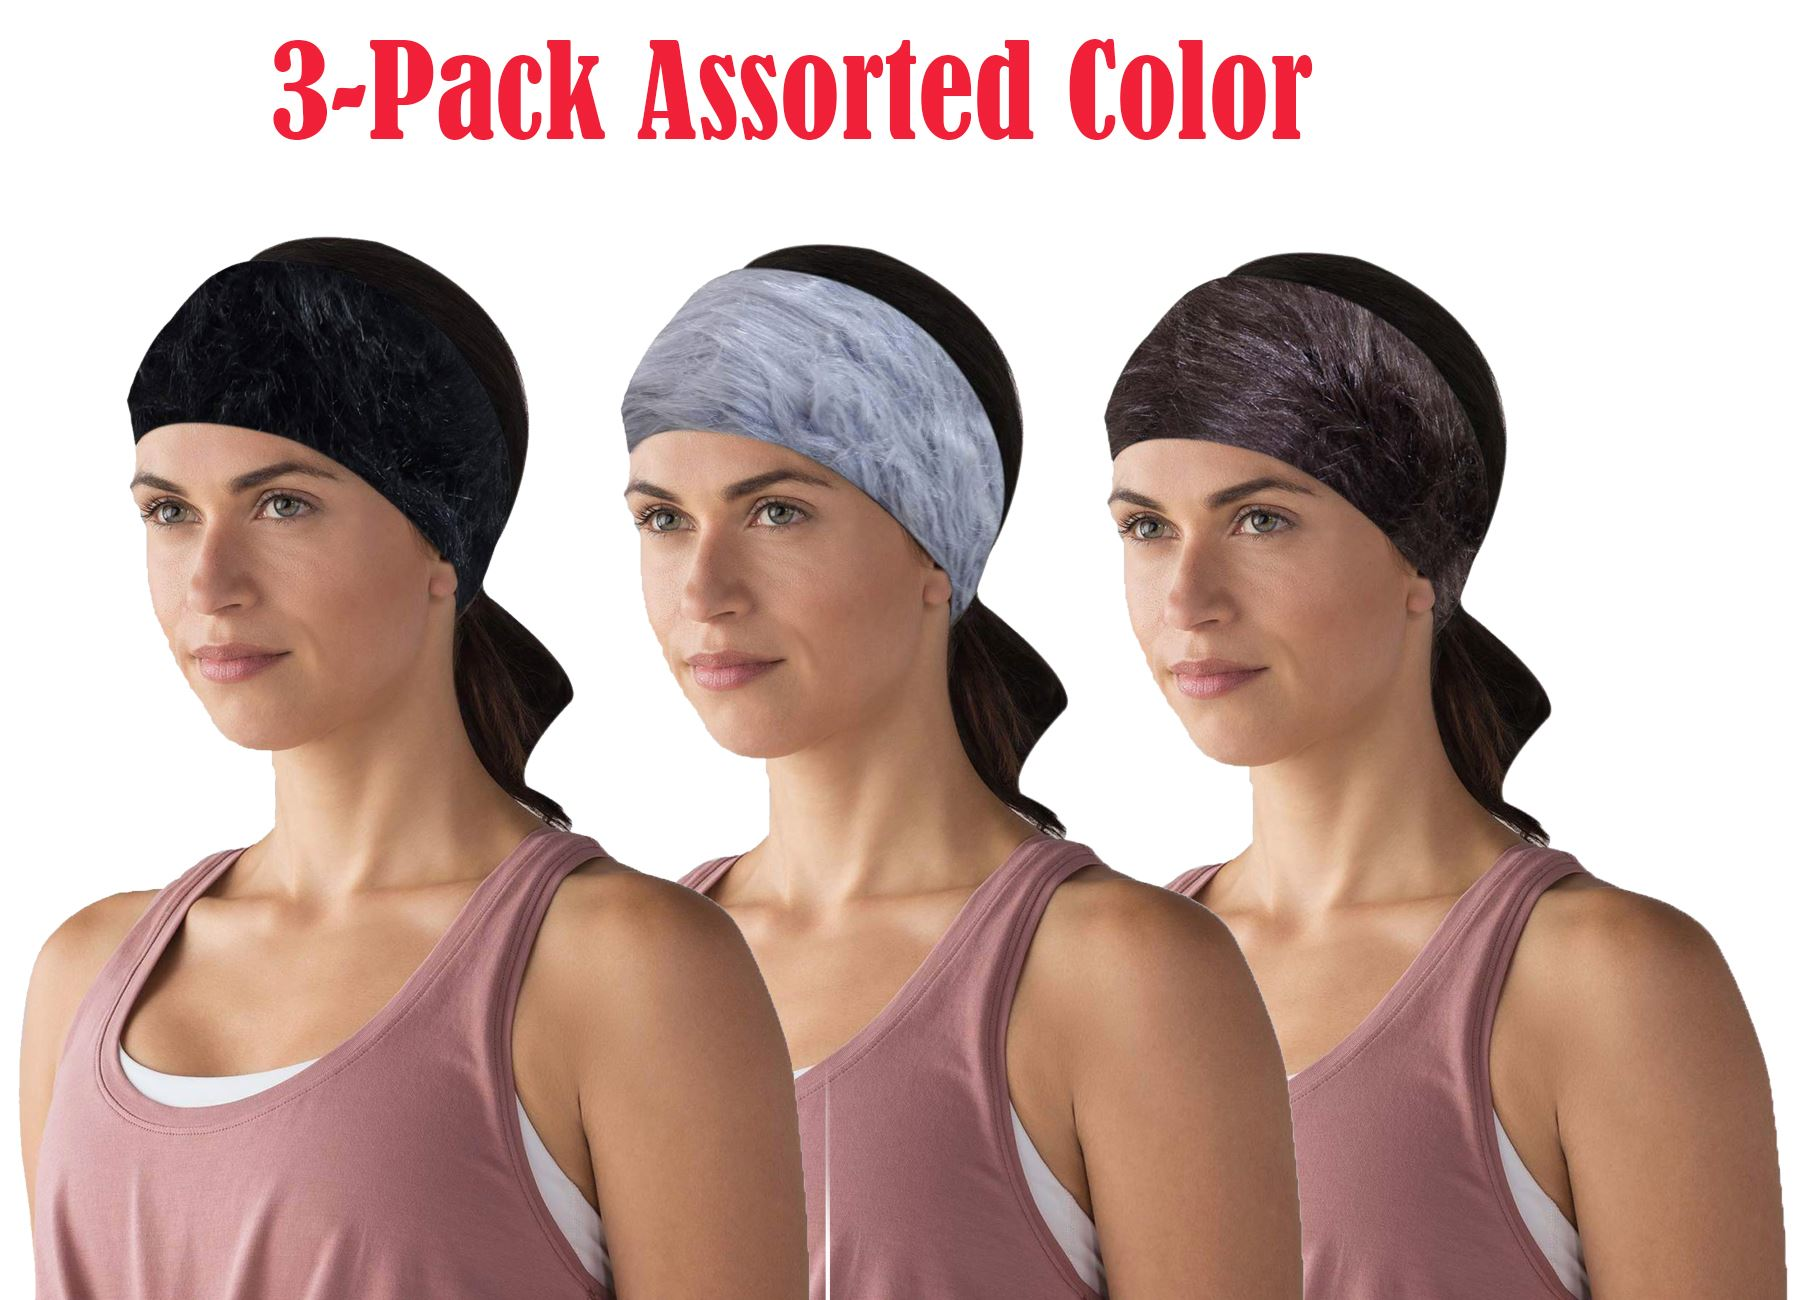 Women Plain Knitted Cross Headband Turban Girls Fashion Twisted Two Layers Elastic Fabric Hairband Hair Accessories Headwrap Large Assortment Apparel Accessories